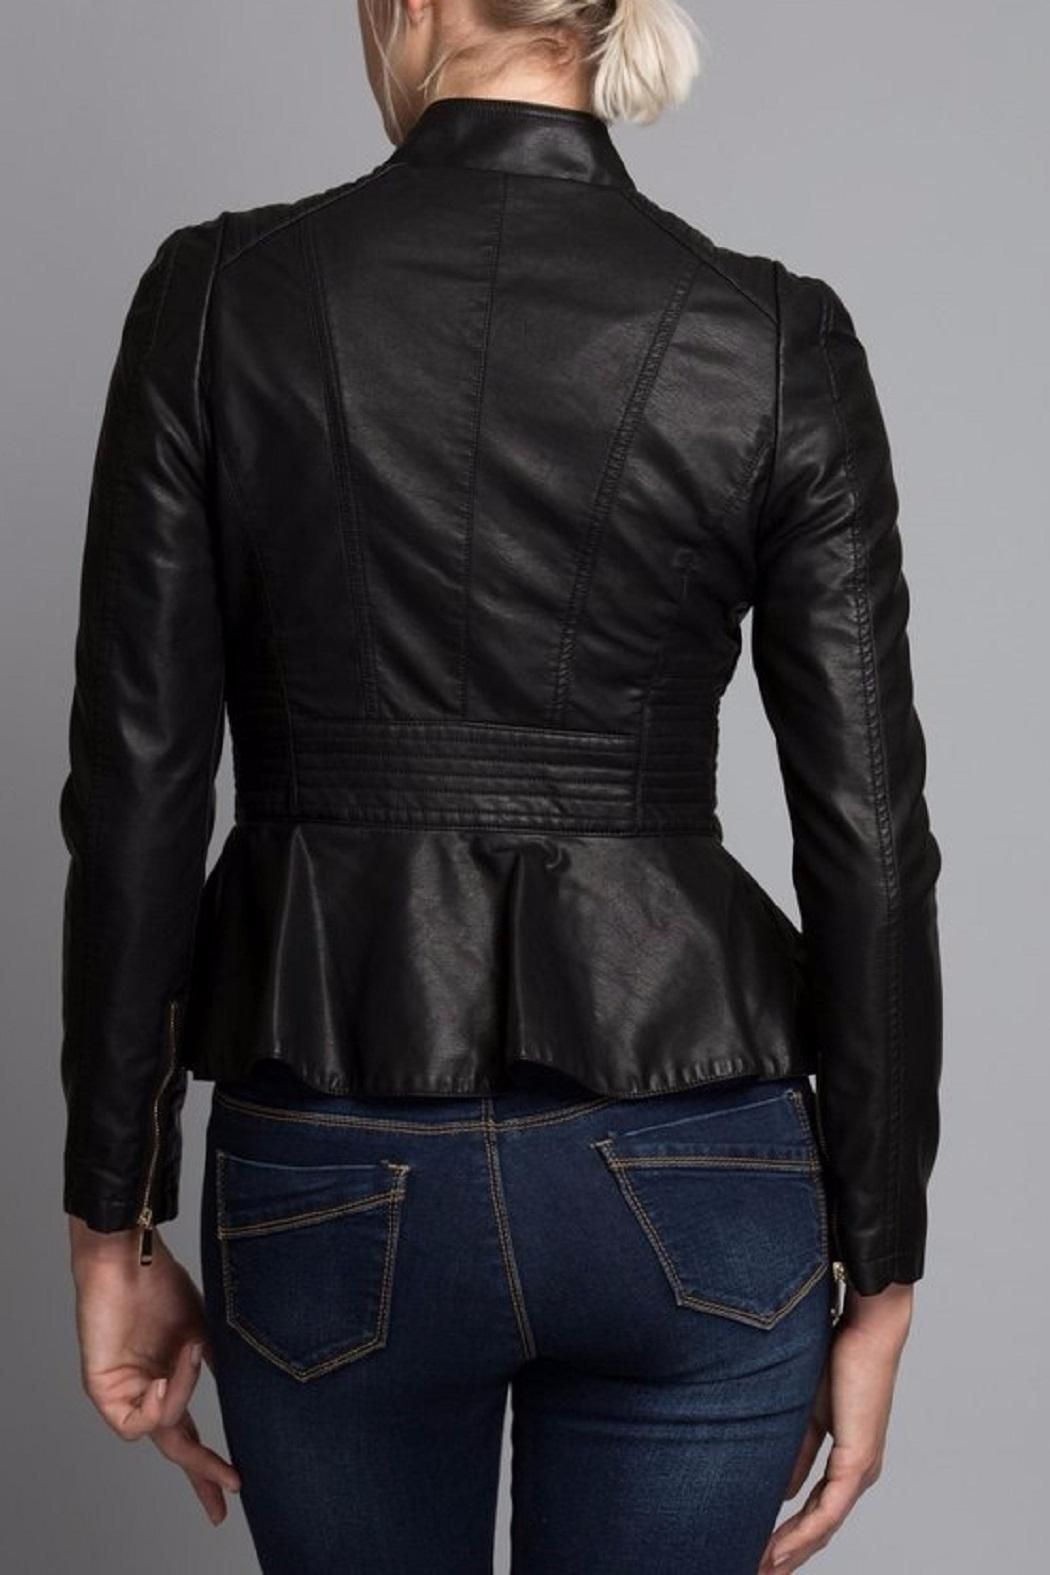 Peplum makes this jacket perfect to wear with skinny jeans or pencil skirt  Vegan Leather Jacket  by Coalition. Clothing - Jackets Coats & Blazers Chicago Illinois